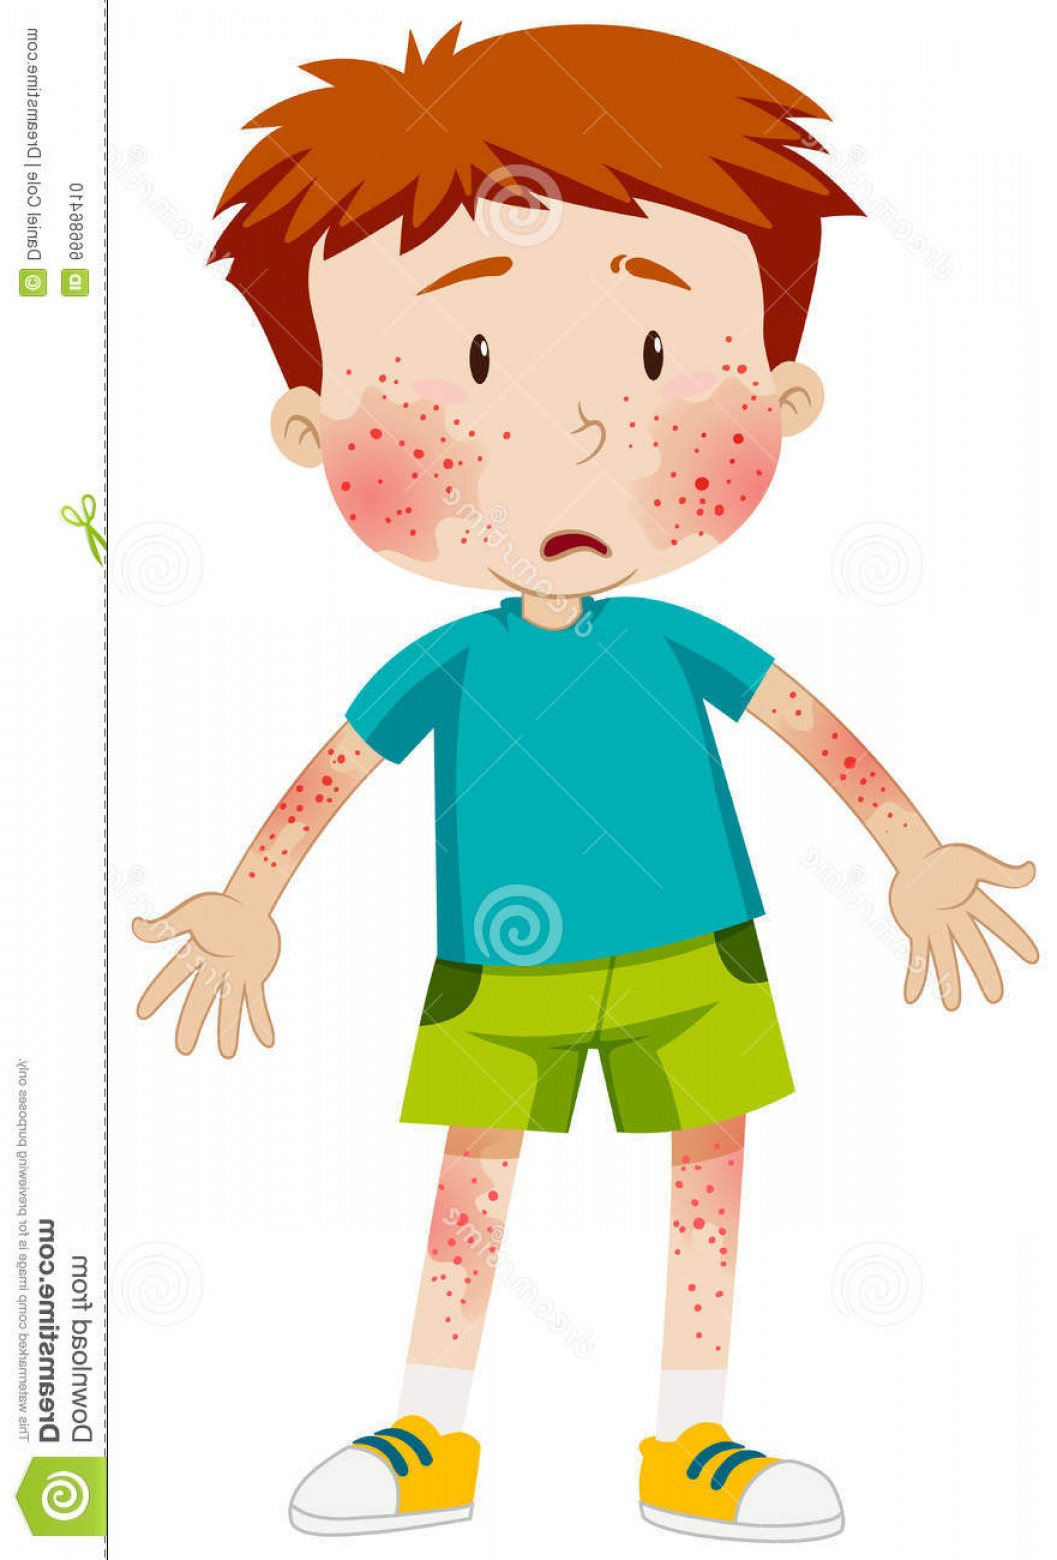 Infectious Disease Vector: Stock Illustration Sad Boy Infectious Disease Illustration Image